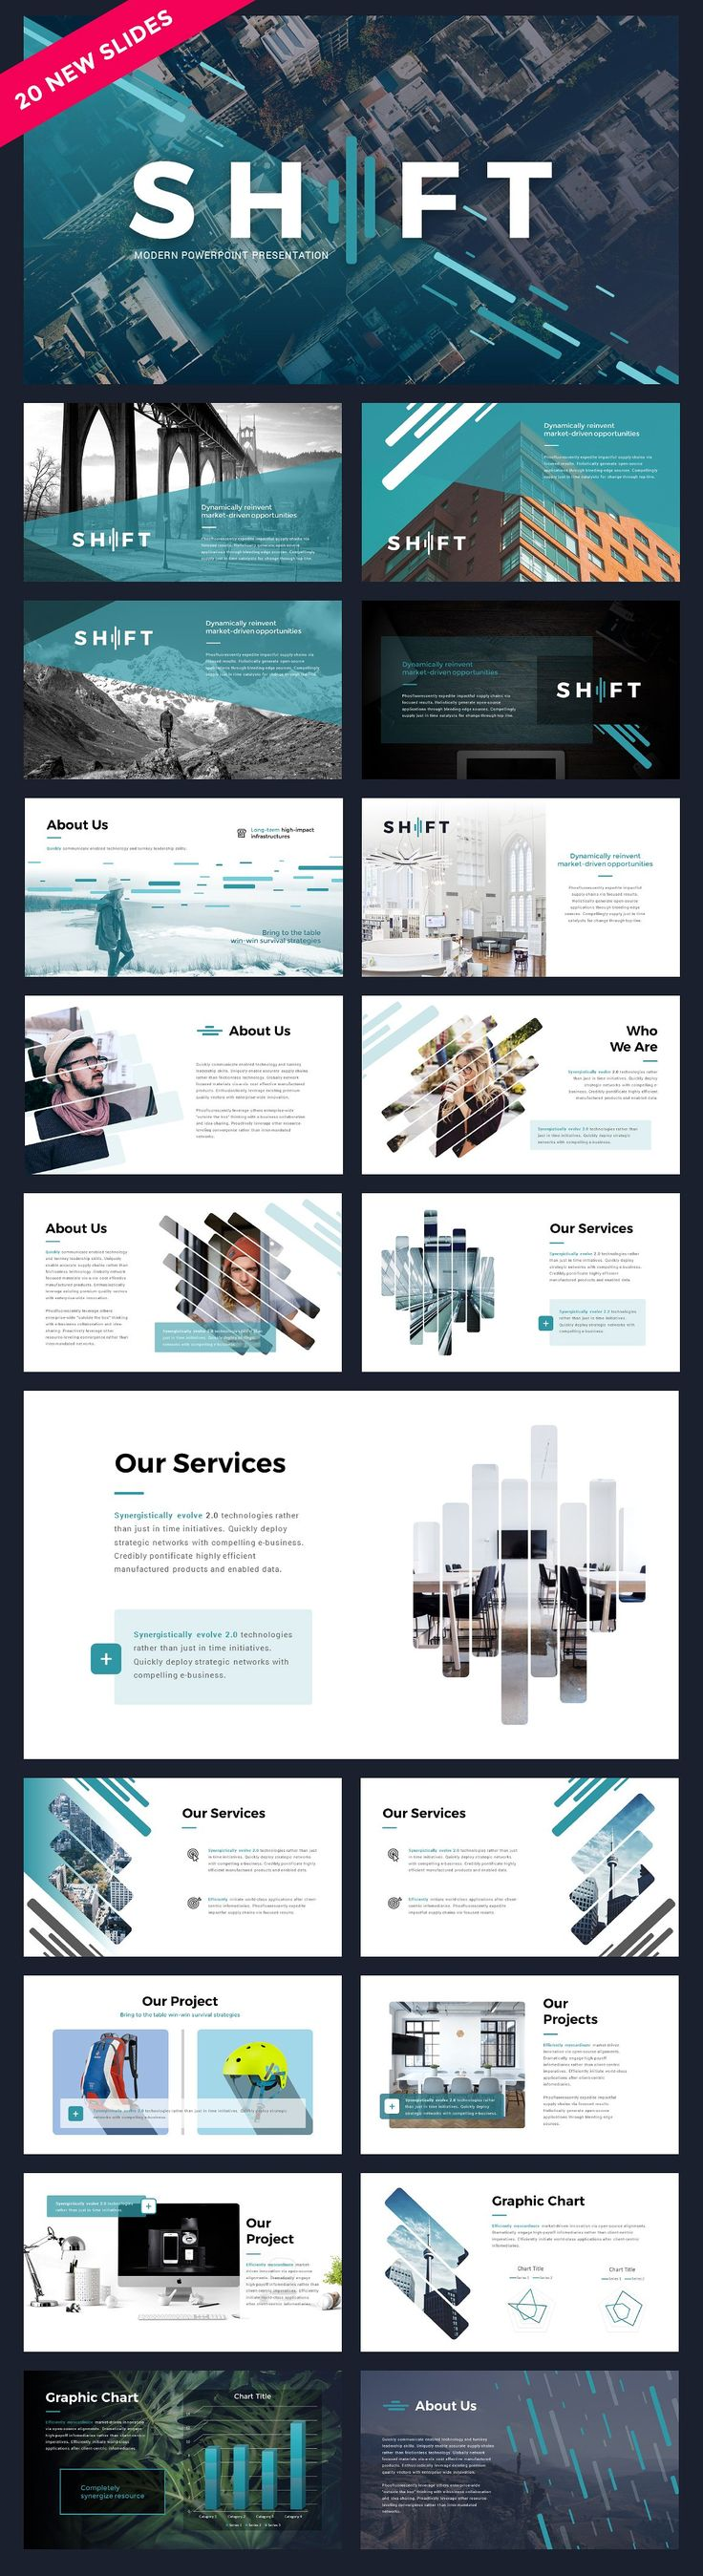 Shift Modern Powerpoint Template by Reshapely on @creativemarket